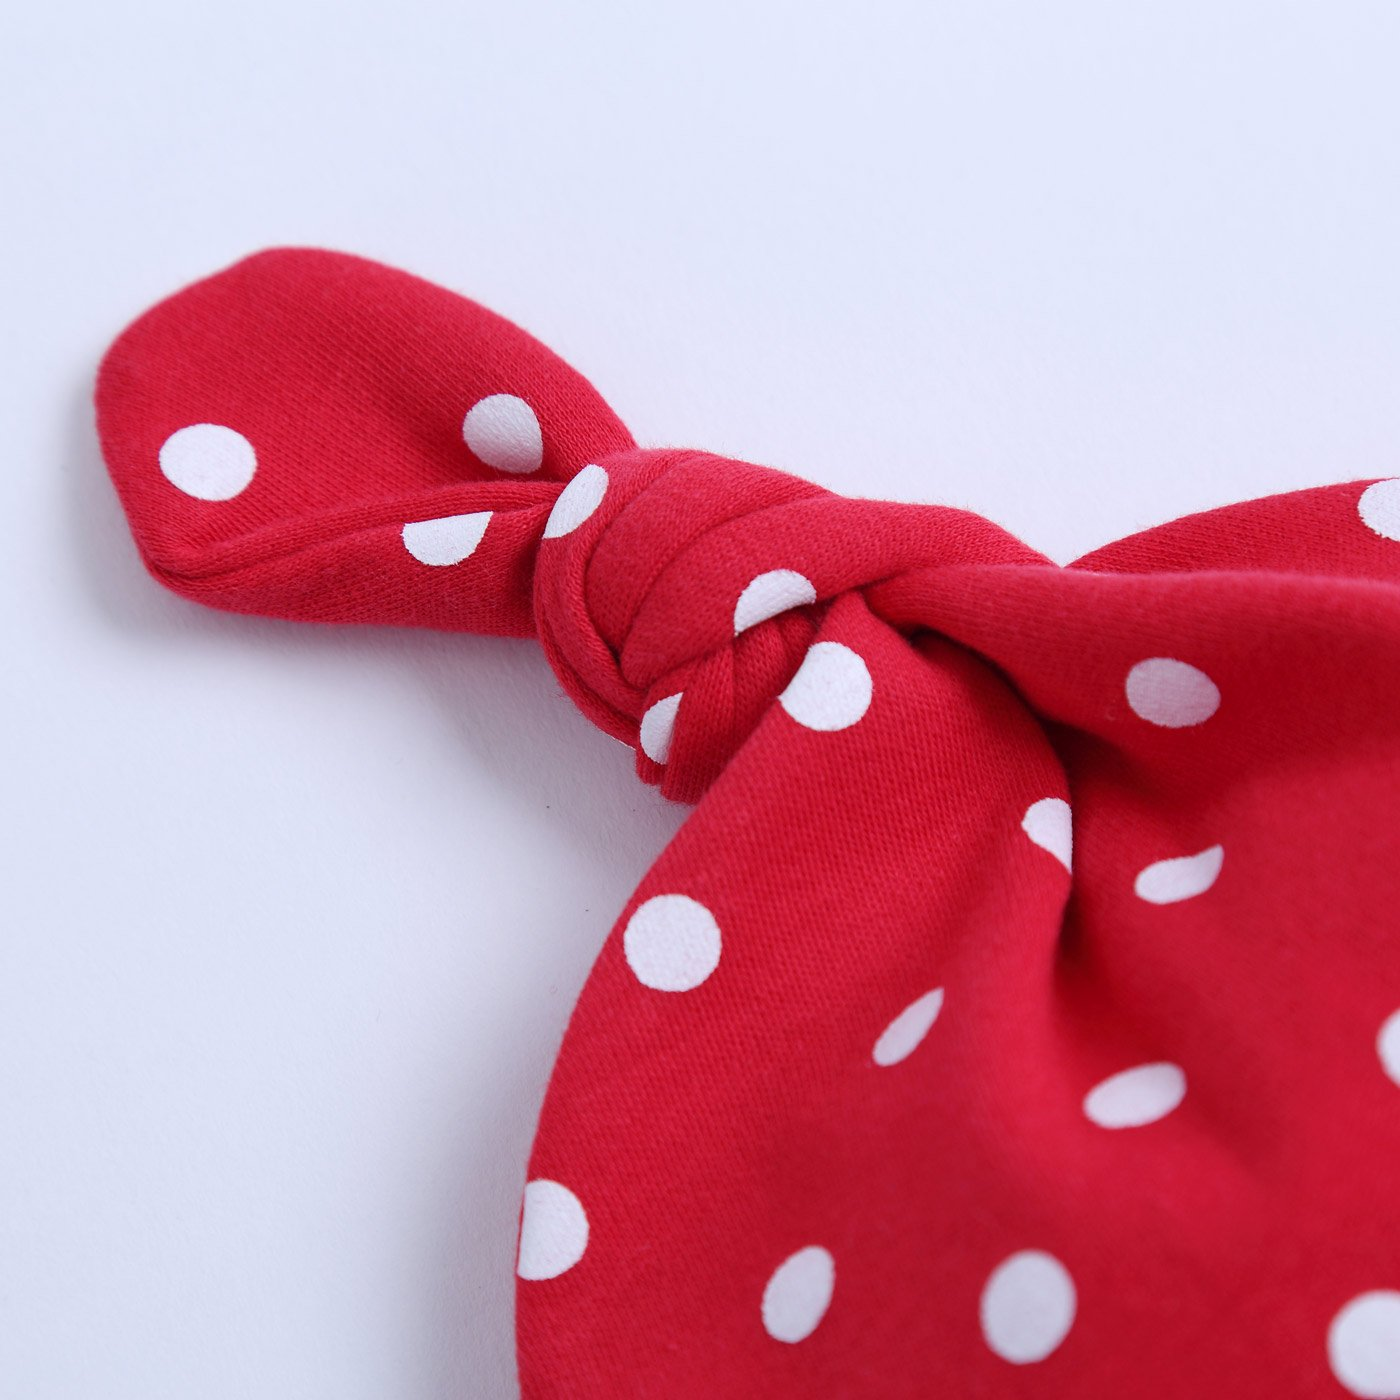 Happy Cherry Unisex Baby Beanies Caps Cotton Soft Stretchy Kids Hat Pack of 3